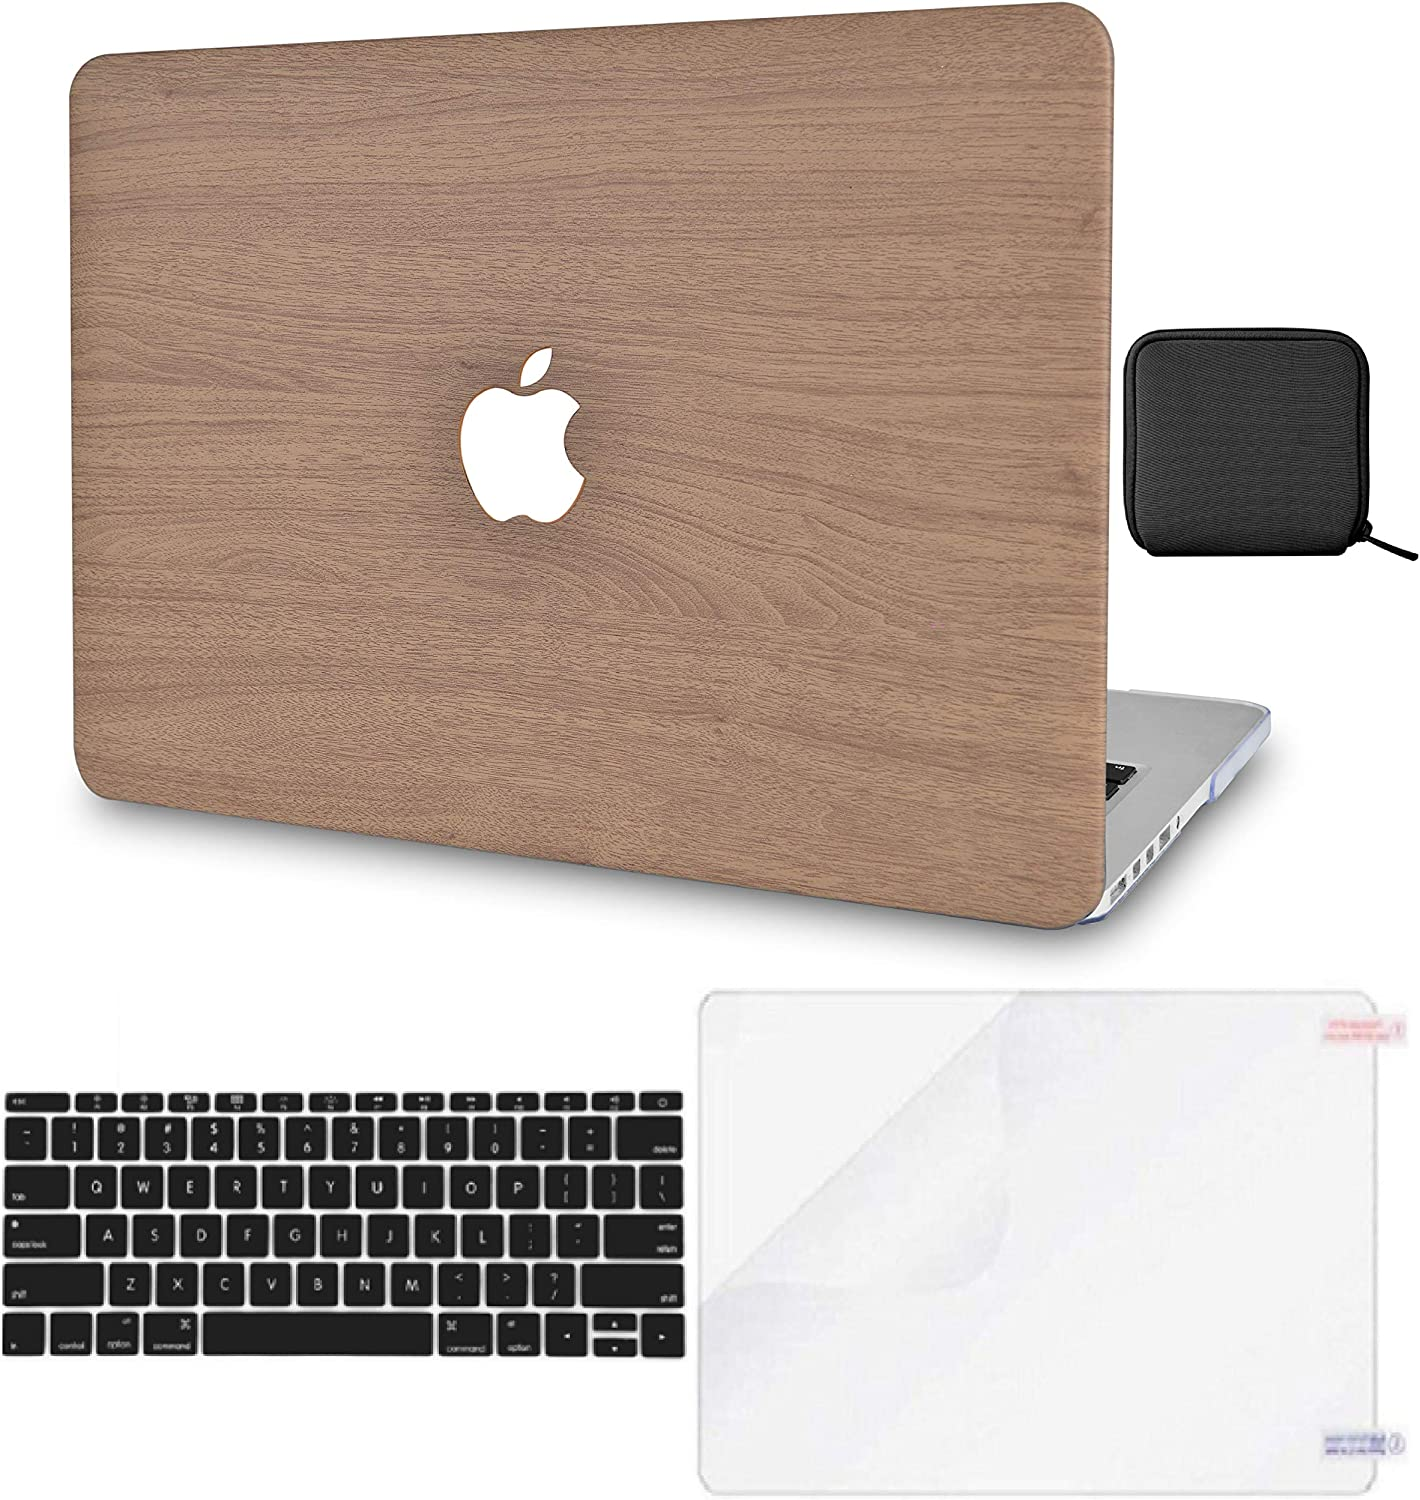 "LuvCase 4in1 Laptop Case for MacBook Pro 13""(2020) with Touch Bar A2251/A2289 Leather Hard Shell Cover, Pouch, Keyboard Cover & Screen Protector (Brown Wood)"